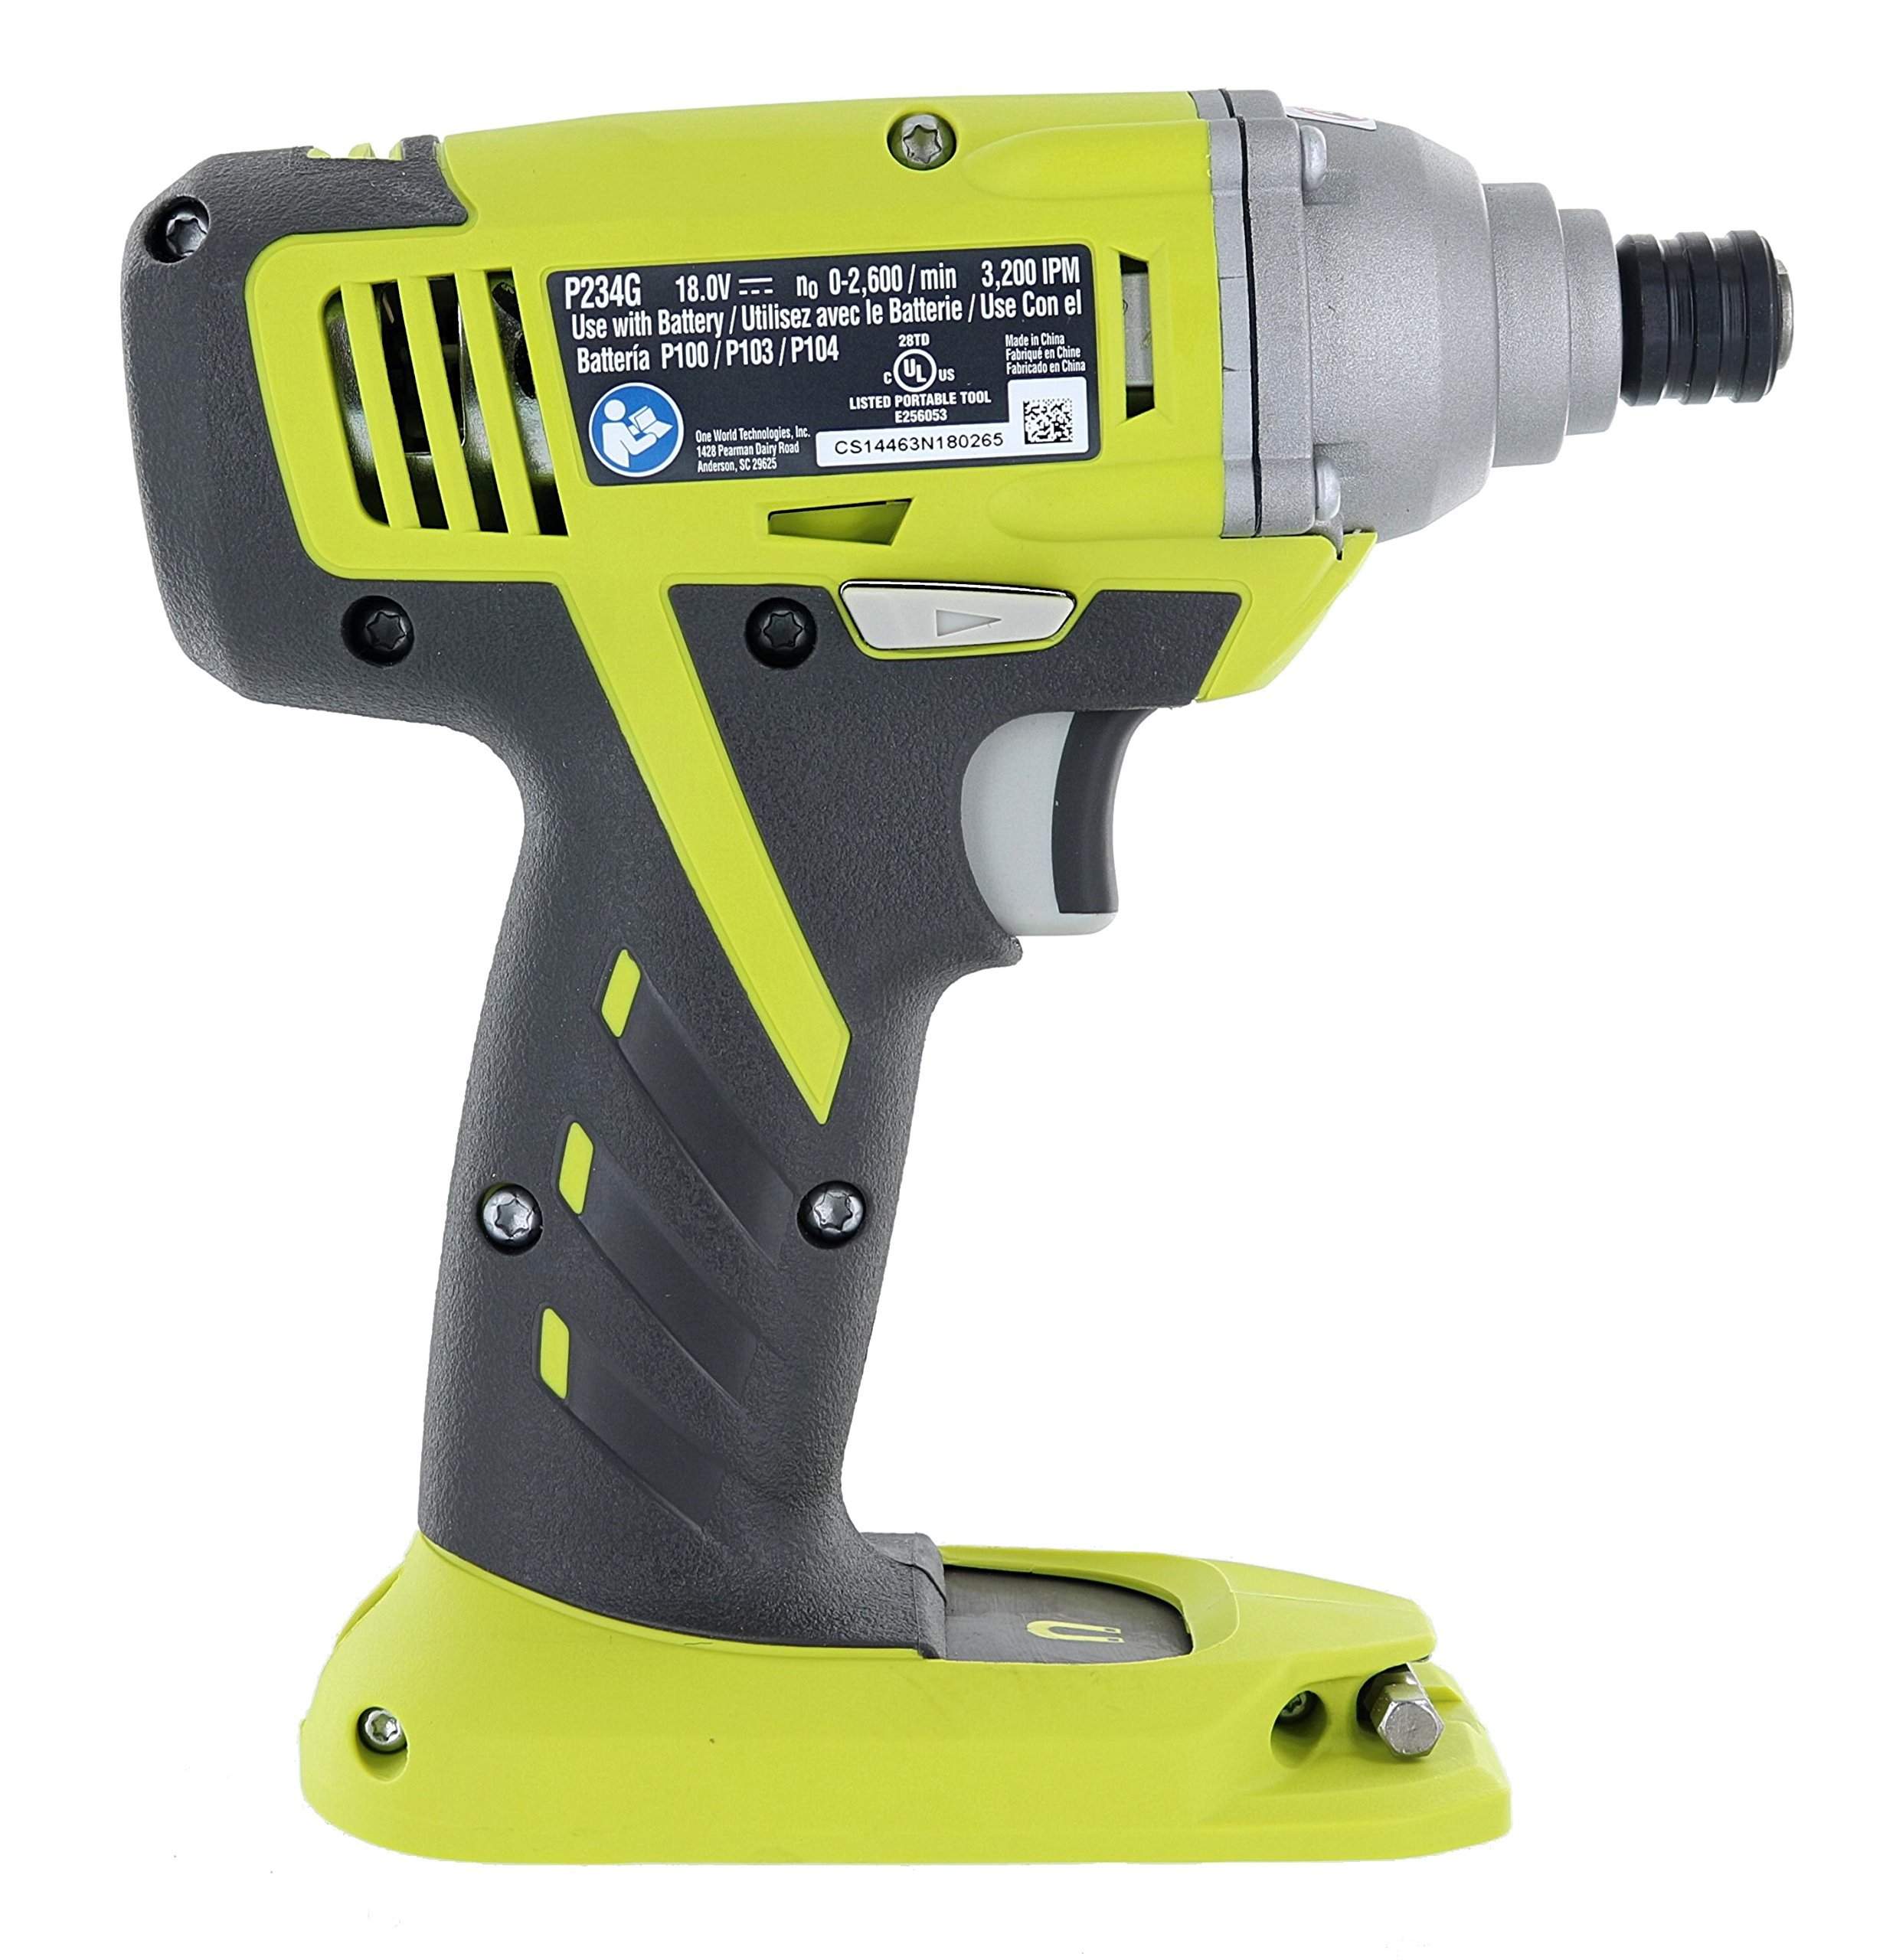 Ryobi P234g One+ 18-Volt Lithium Ion Cordless Impact Driver (Battery Not Included / Power Tool Only) (Certified Refurbished) by Ryobi (Image #3)